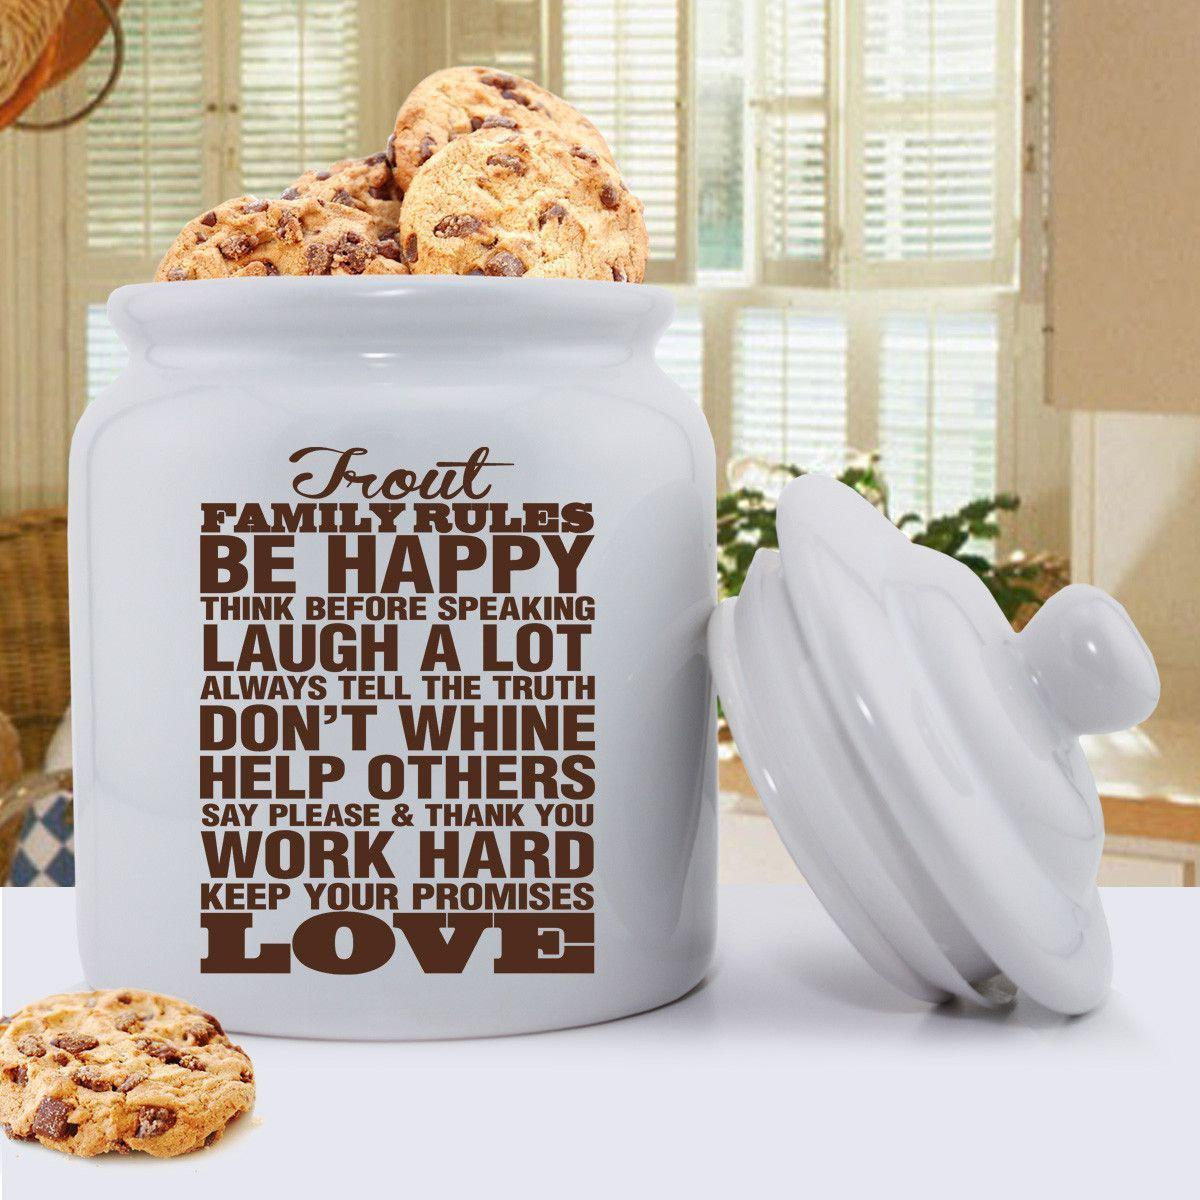 Personalized Antique Style Family Rules Cookie Jar